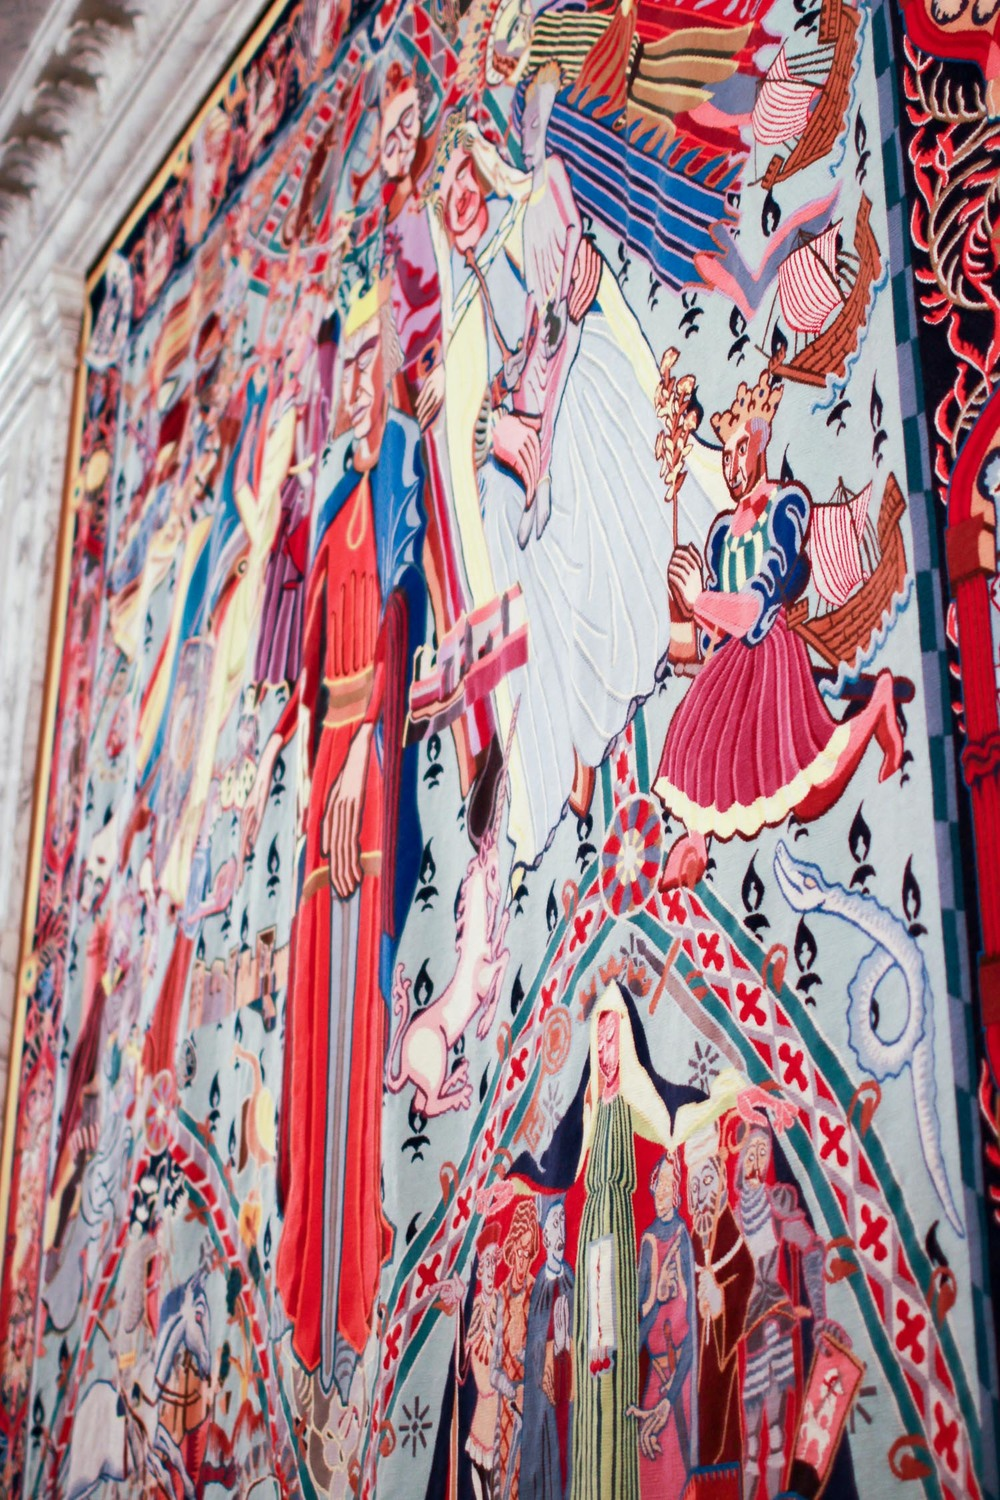 Tapestries gifted to the Queen in the year 2000